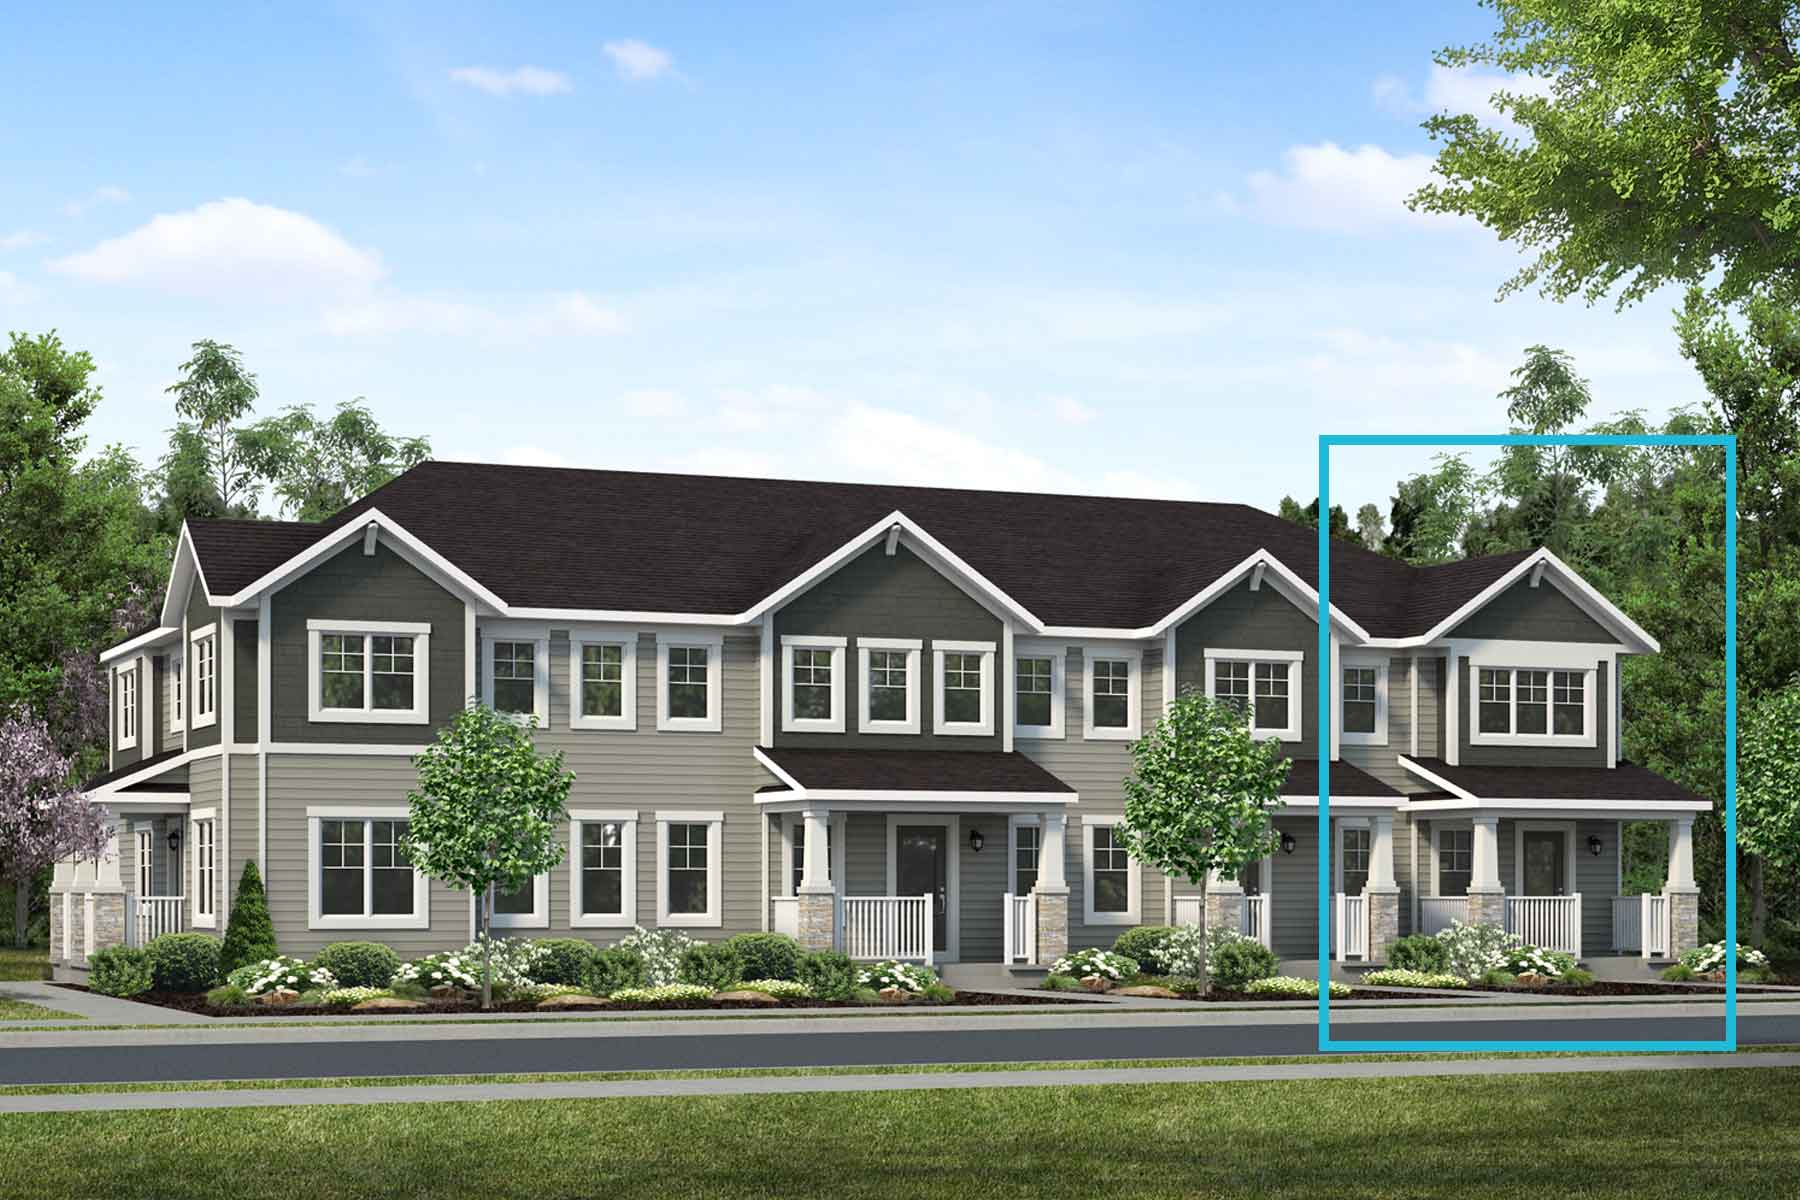 Vanier End Plan TownHomes at Carrington in Calgary Alberta by Mattamy Homes